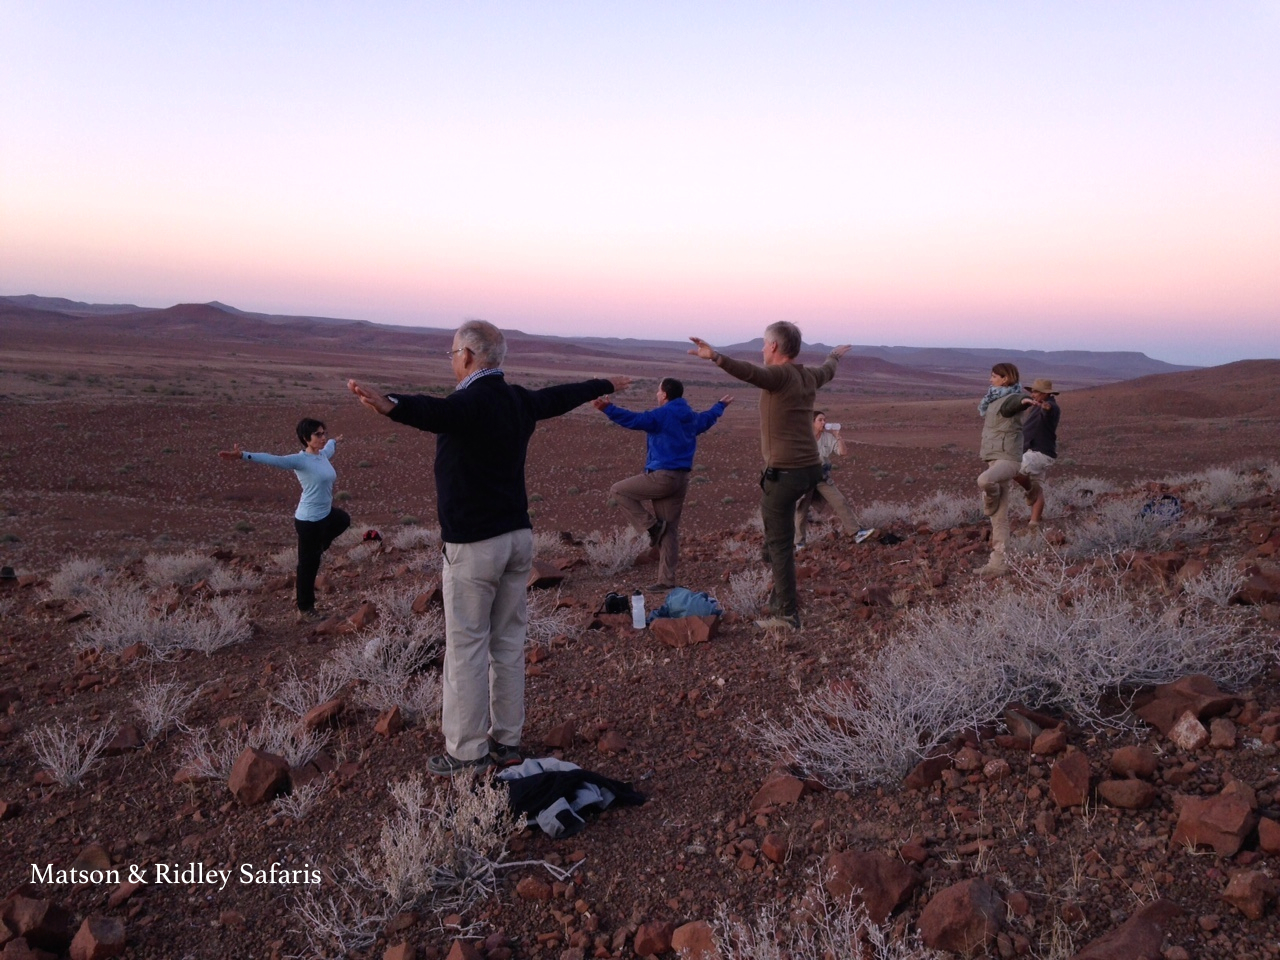 Impromptu yoga session led by Roopa Dewan, one of my guests, as the sun rose over Damaraland